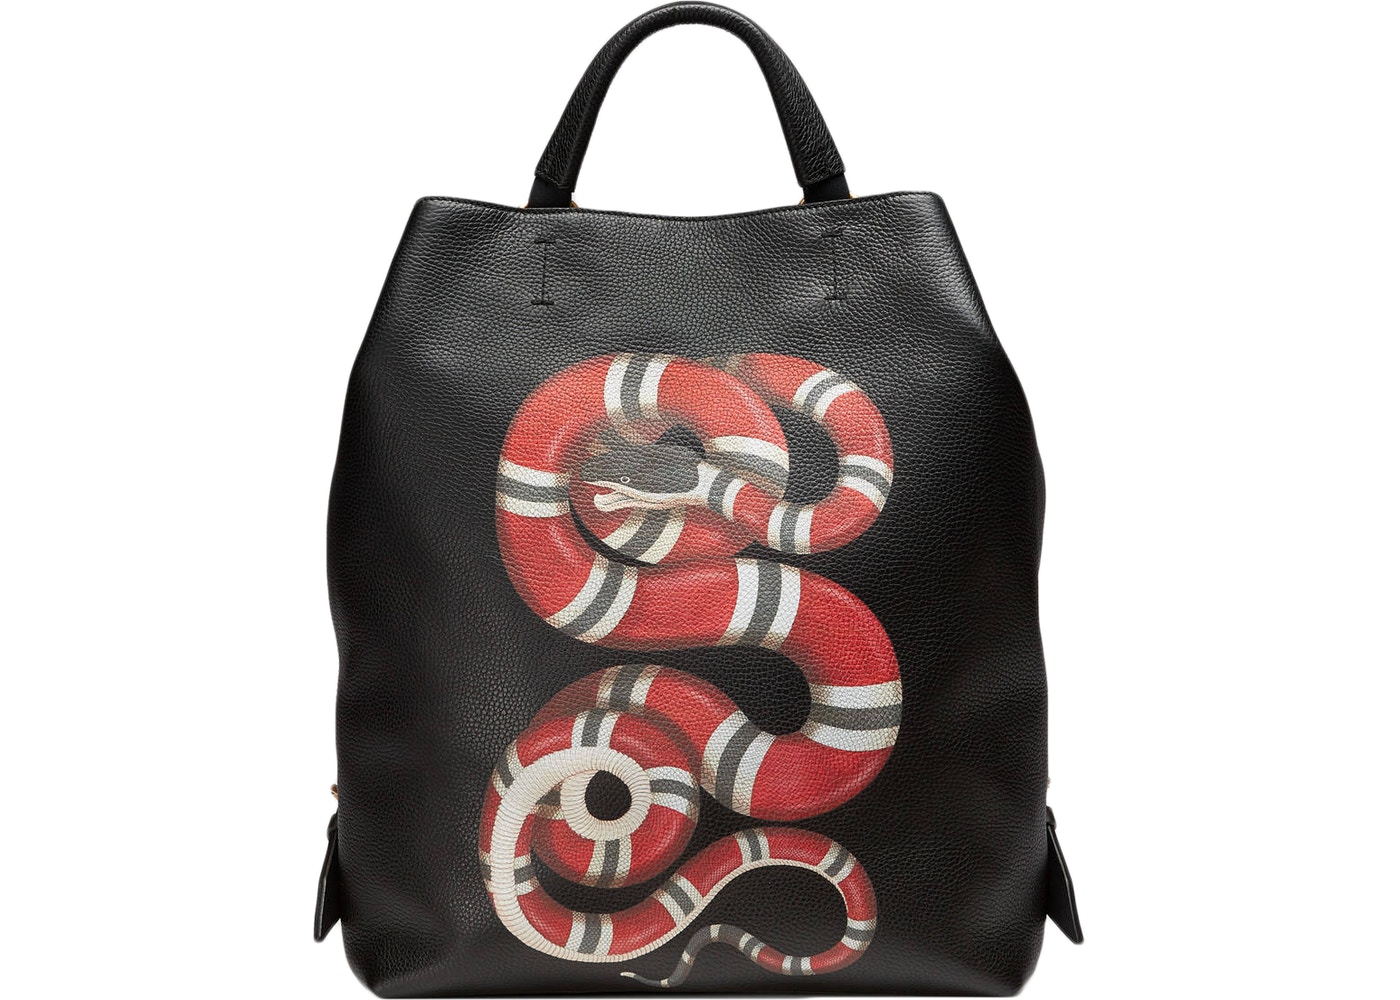 03039e773dbc7f Sell. or Ask. View All Bids. Gucci Kingsnake Print Backpack Black/Red/White